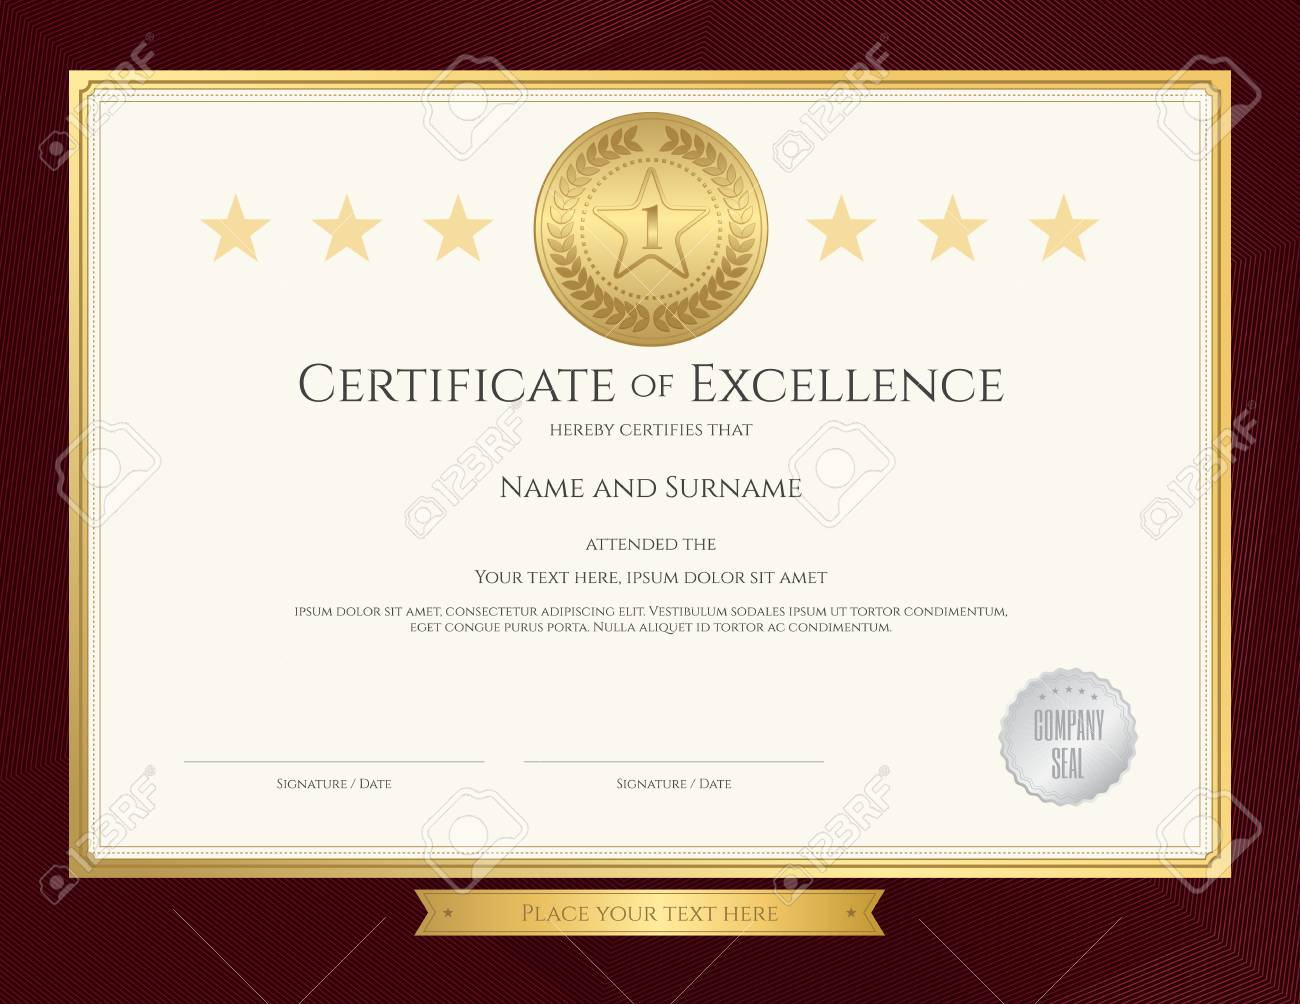 elegant certificate template for excellence achievement